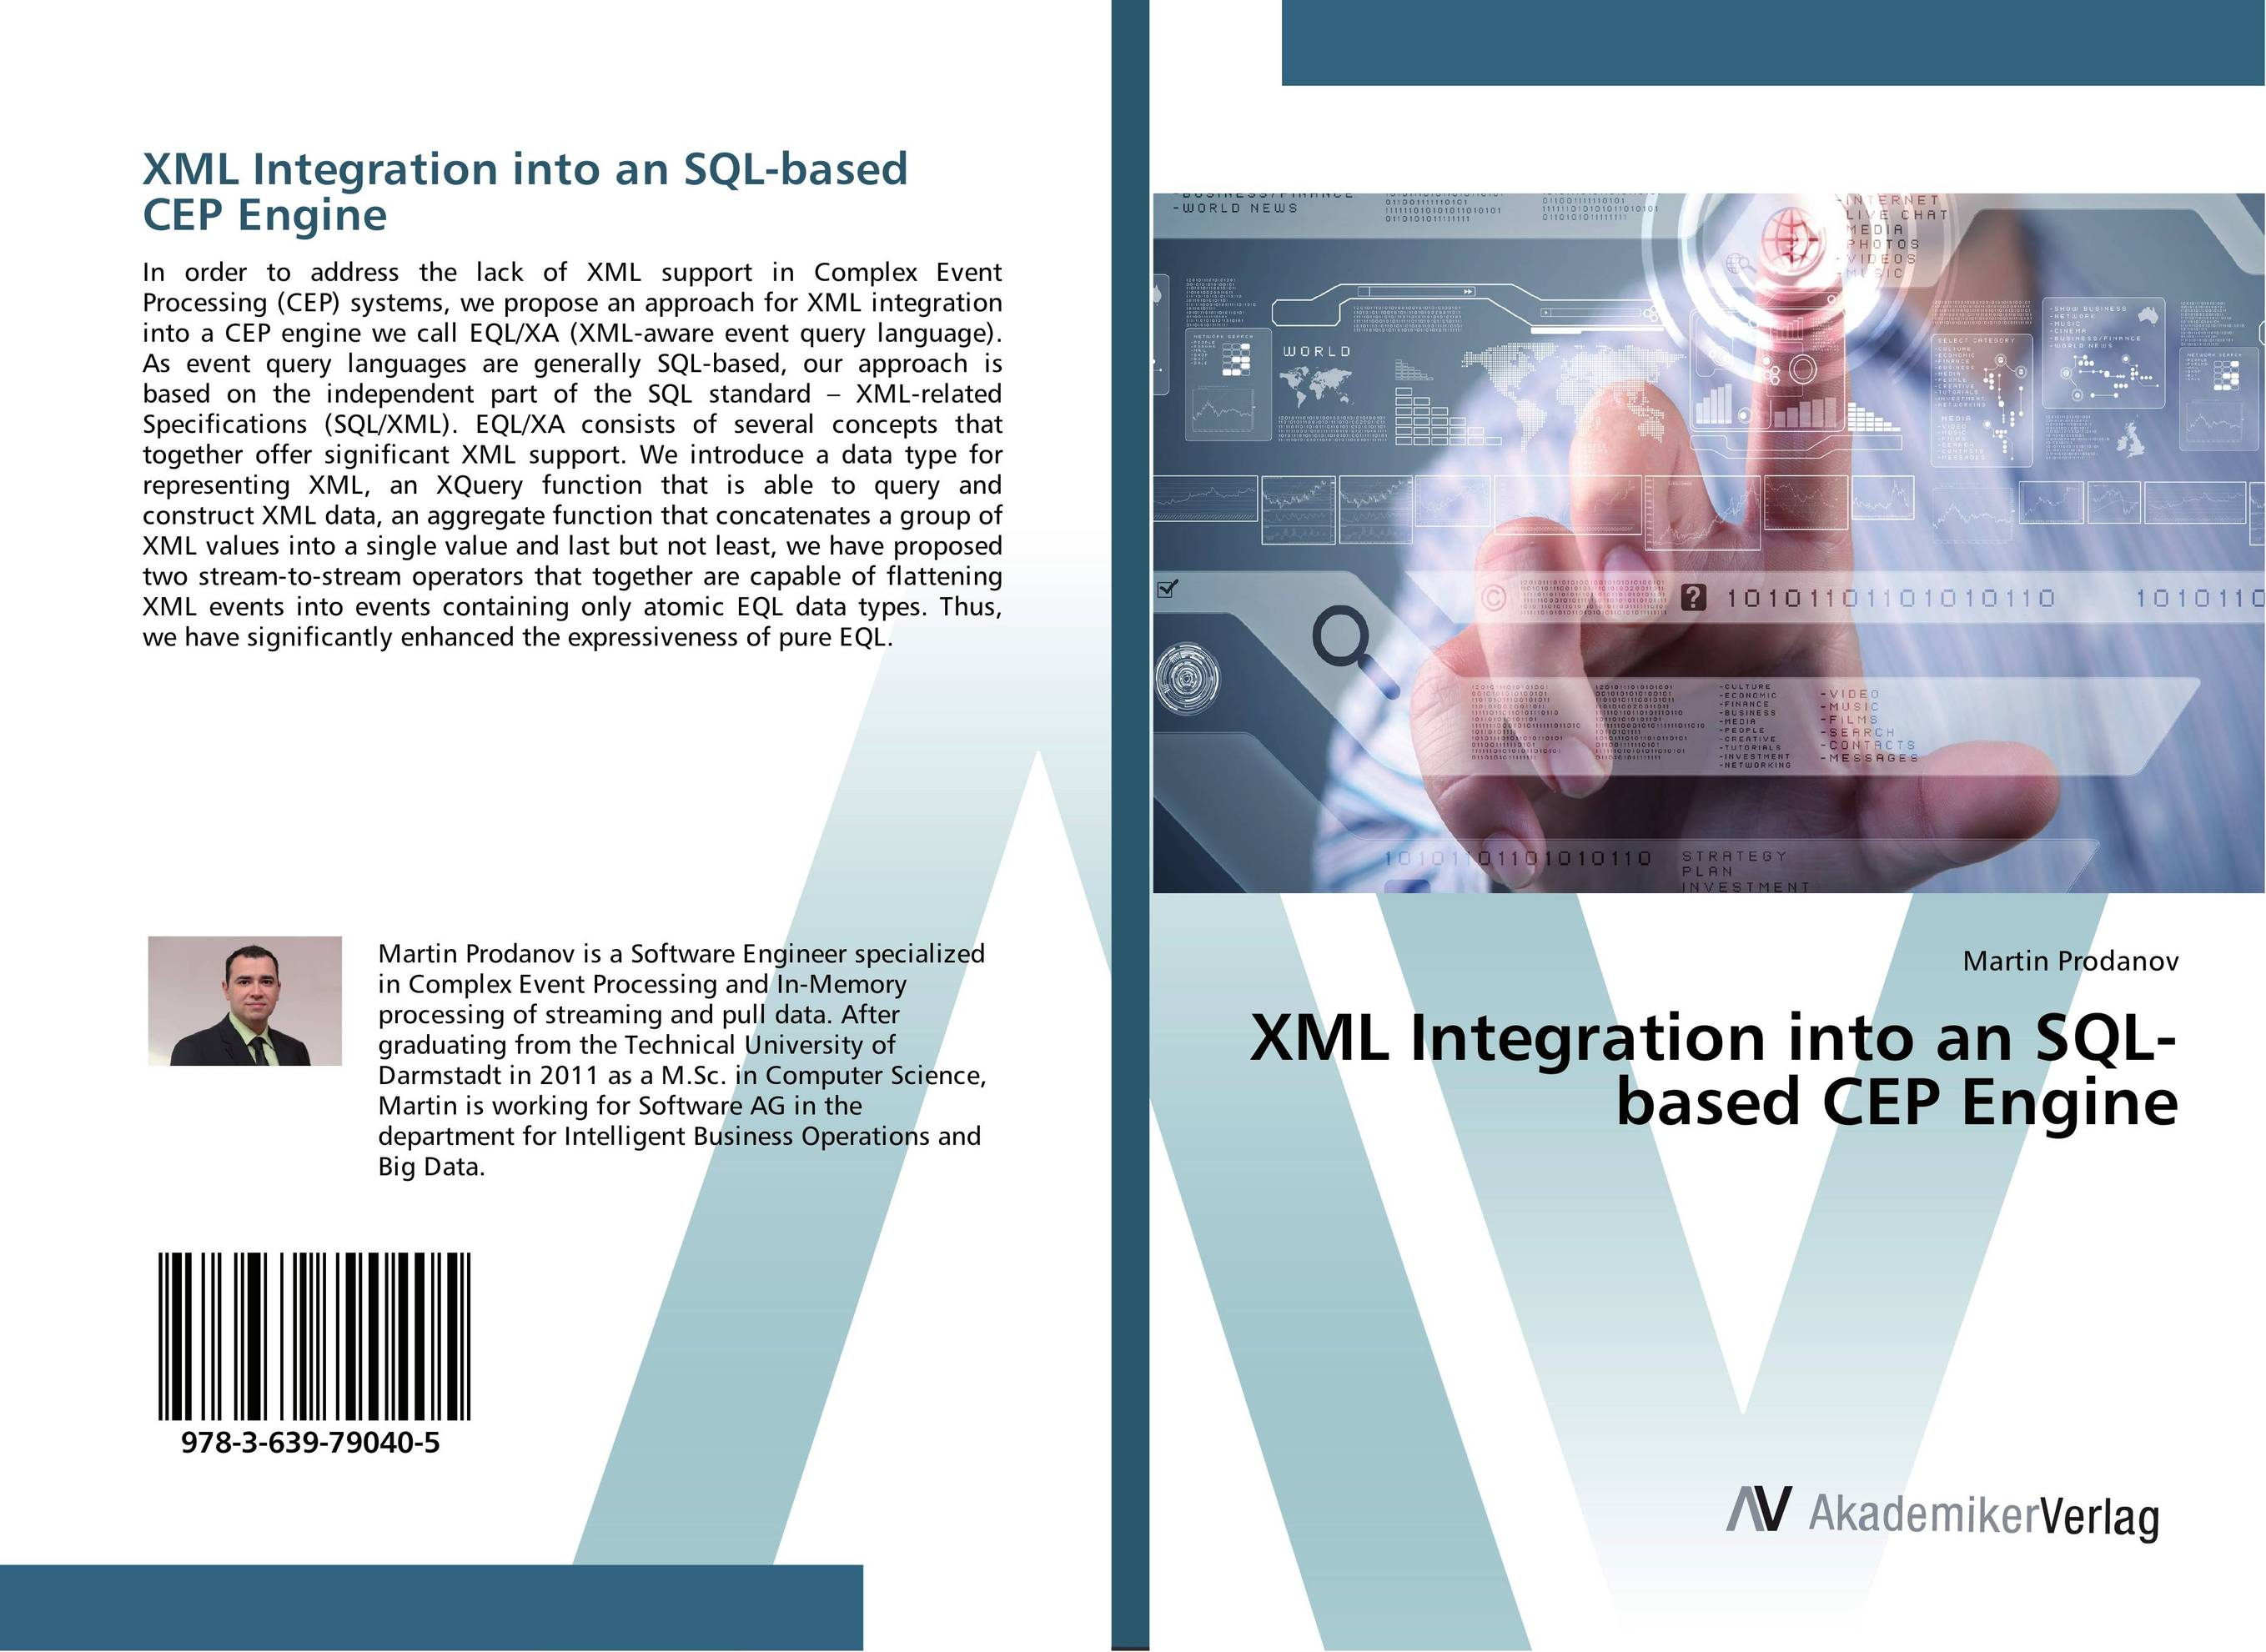 XML Integration into an SQL-based CEP Engine sitemap 330 xml